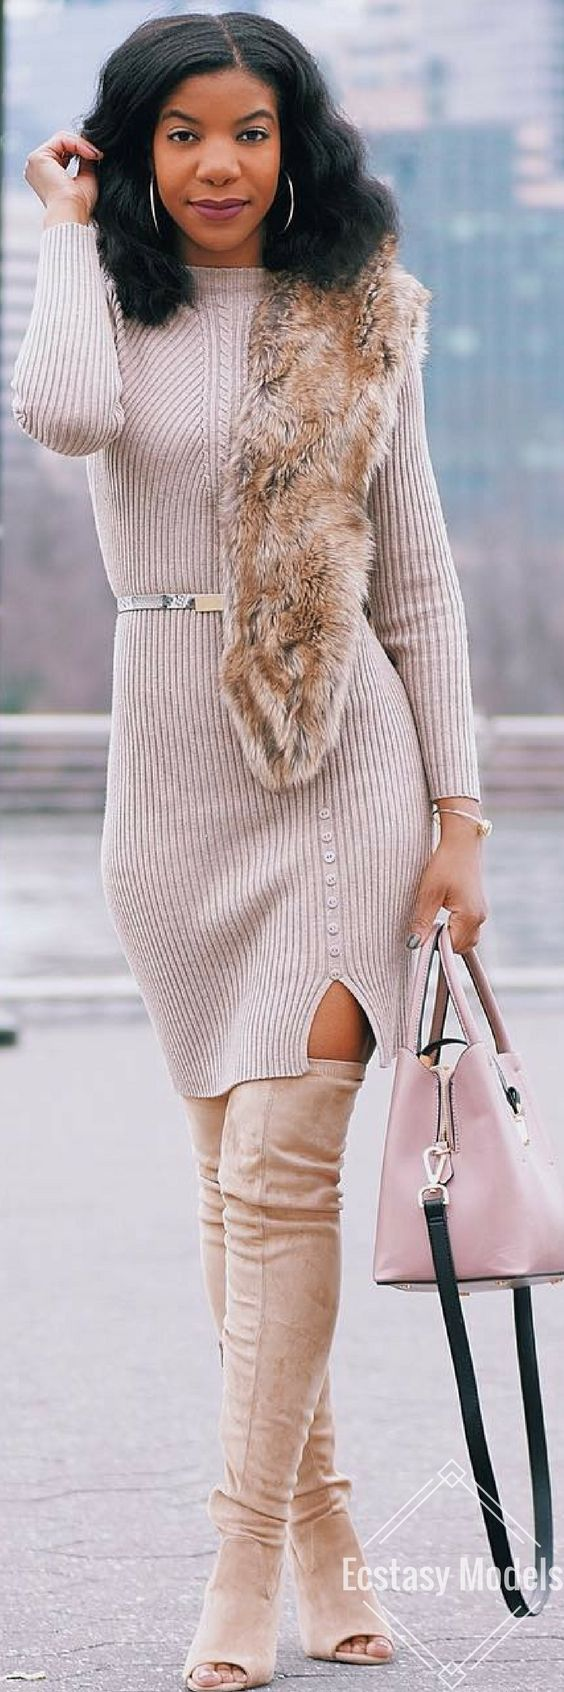 Khaki Dress from @sheinofficial // Fashion Look by Kasi Perkins